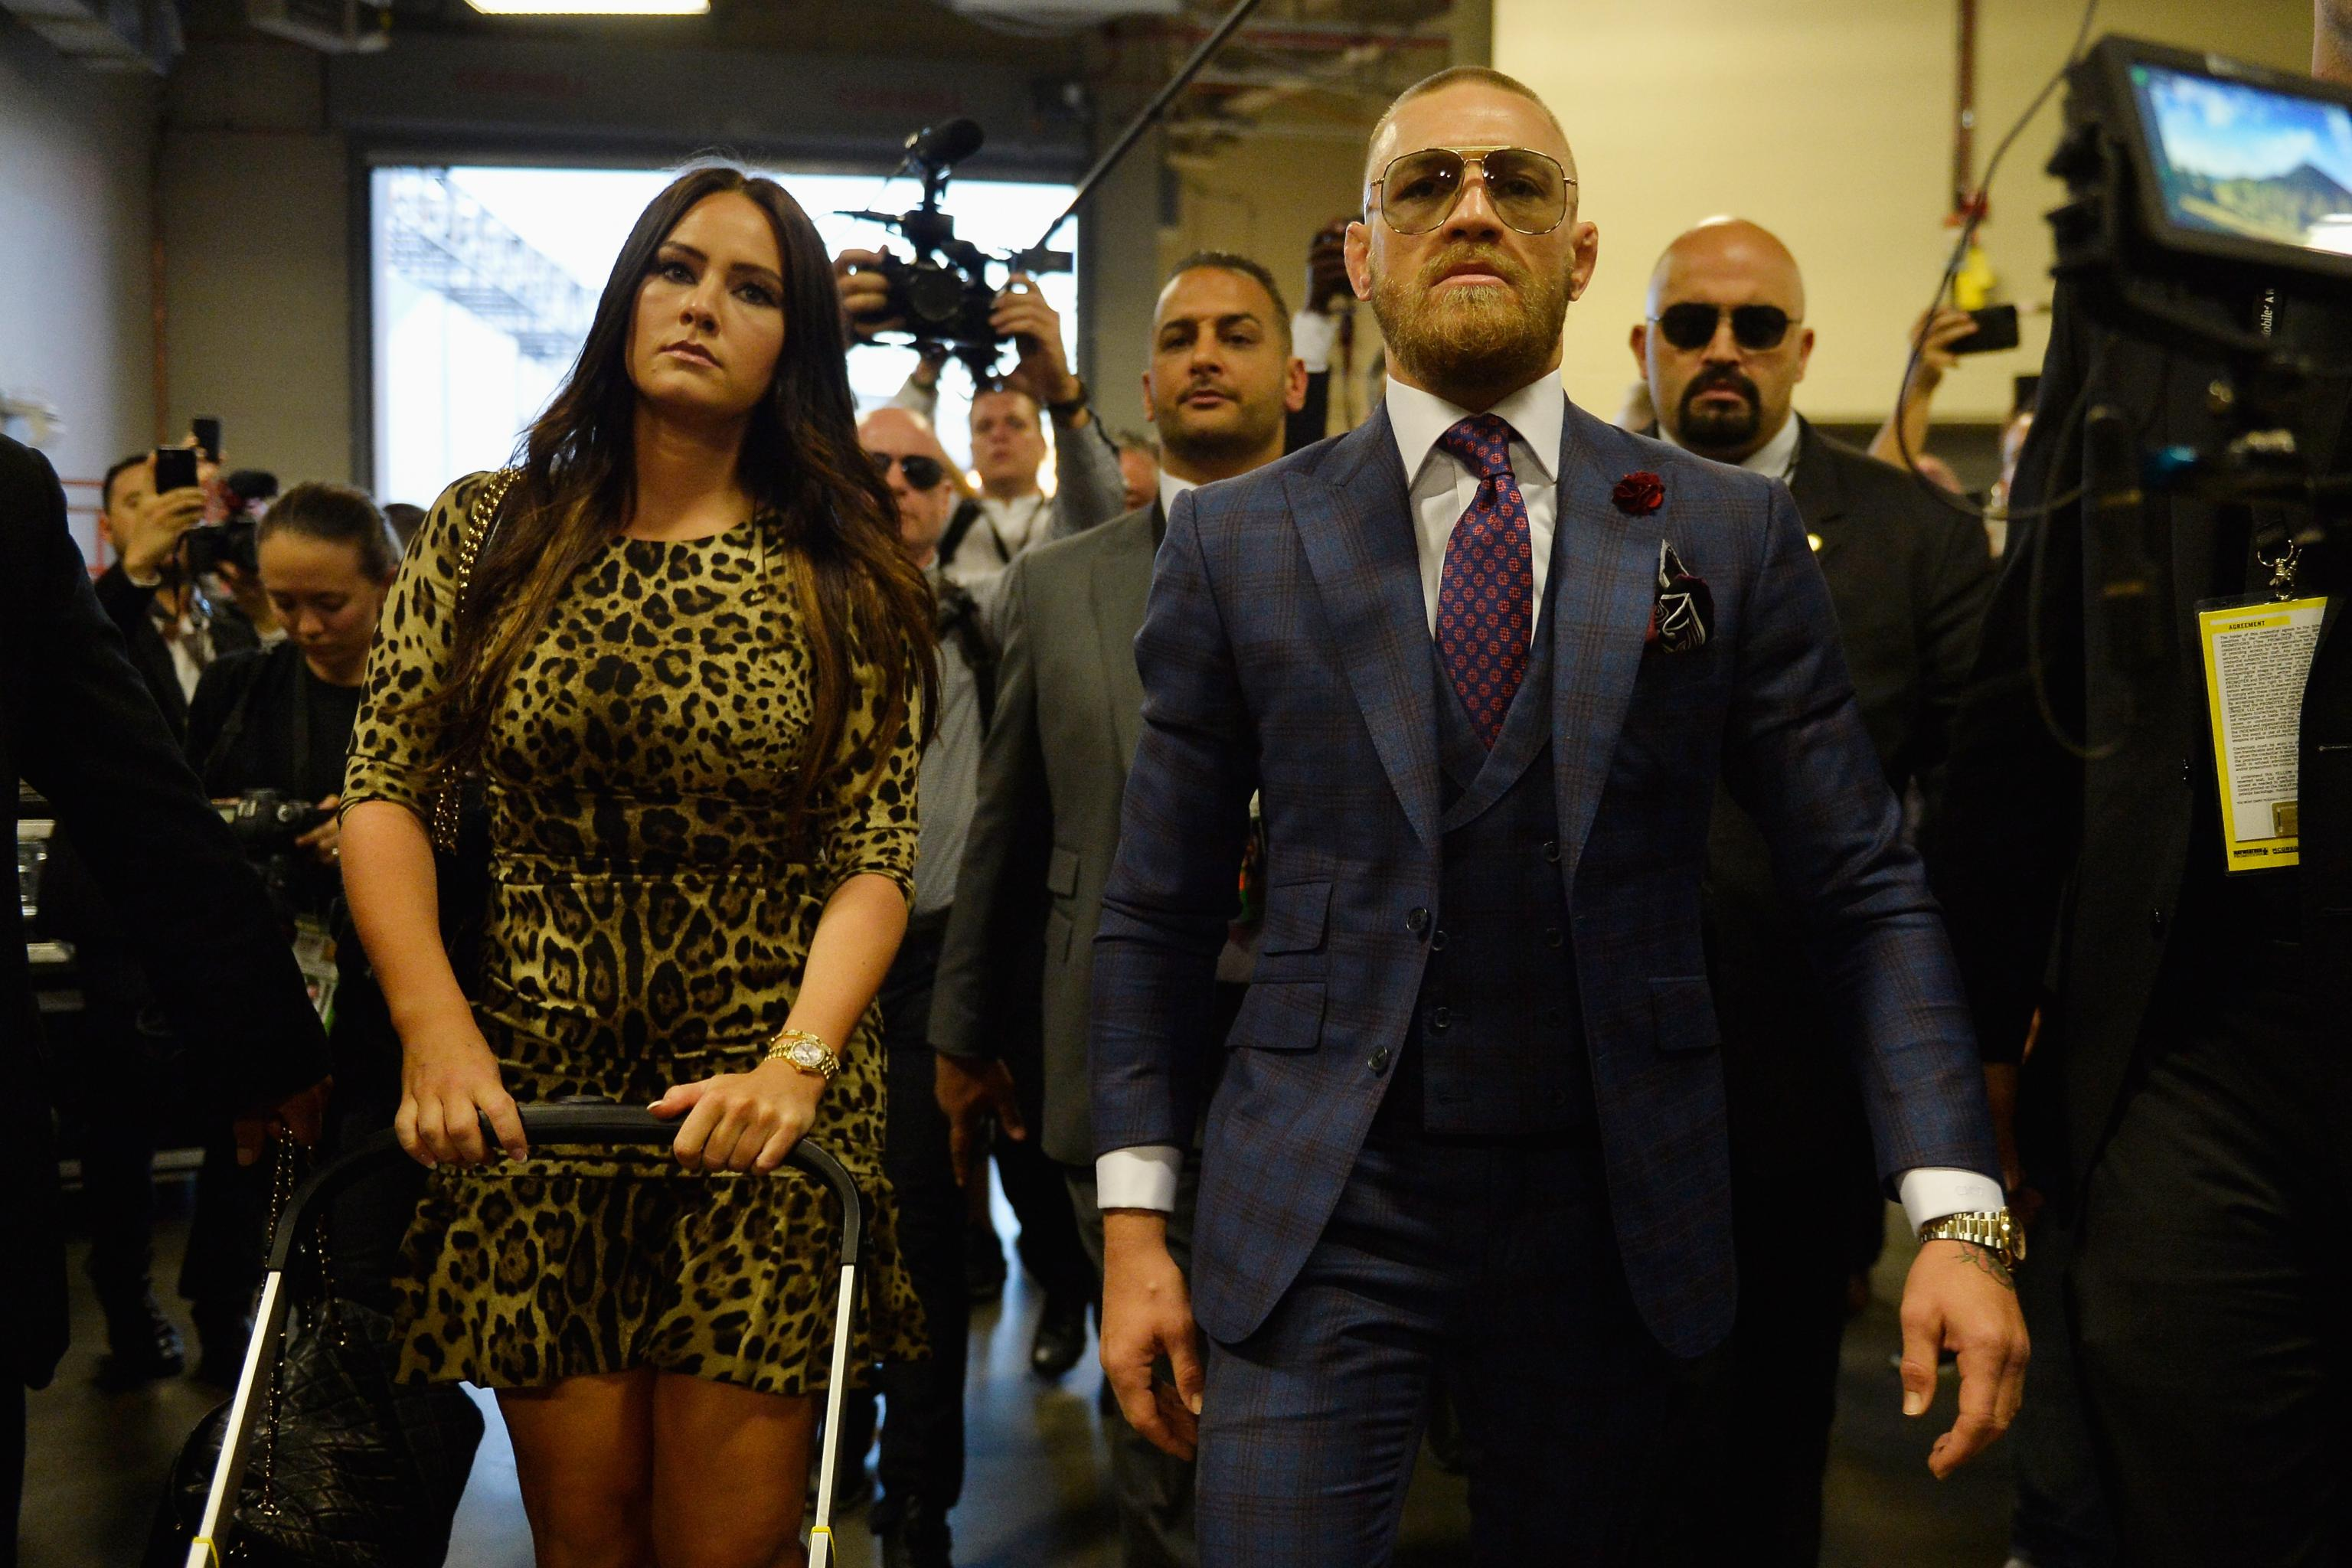 Conor Mcgregor Girlfriend Dee Devlin Announce They Re Expecting 2nd Child Bleacher Report Latest News Videos And Highlights